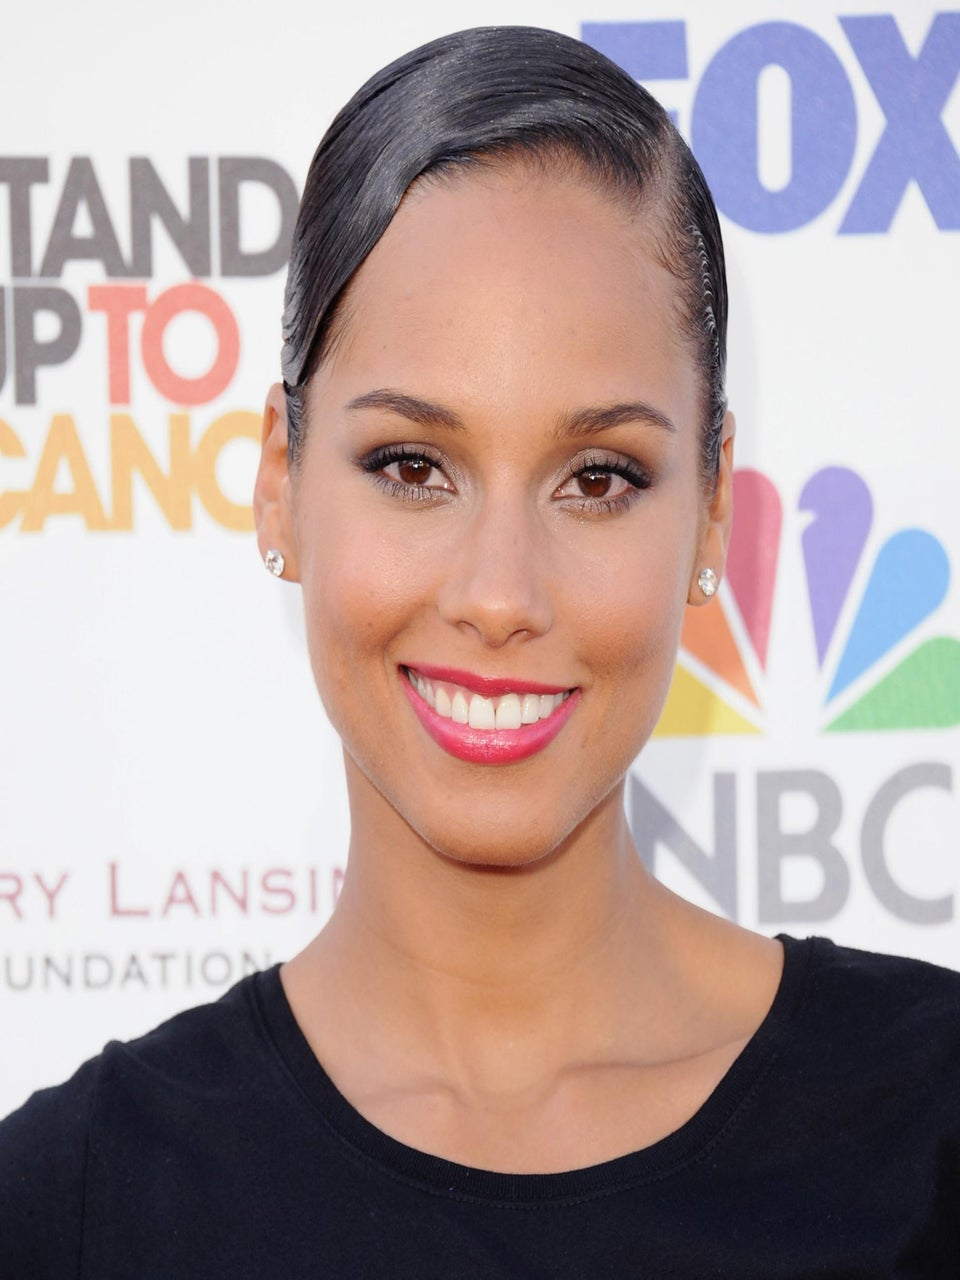 EXCLUSIVE: Alicia Keys Talks <i>Girl on Fire</i> Details, Solves 'Put It in a Love Song' Video Mystery